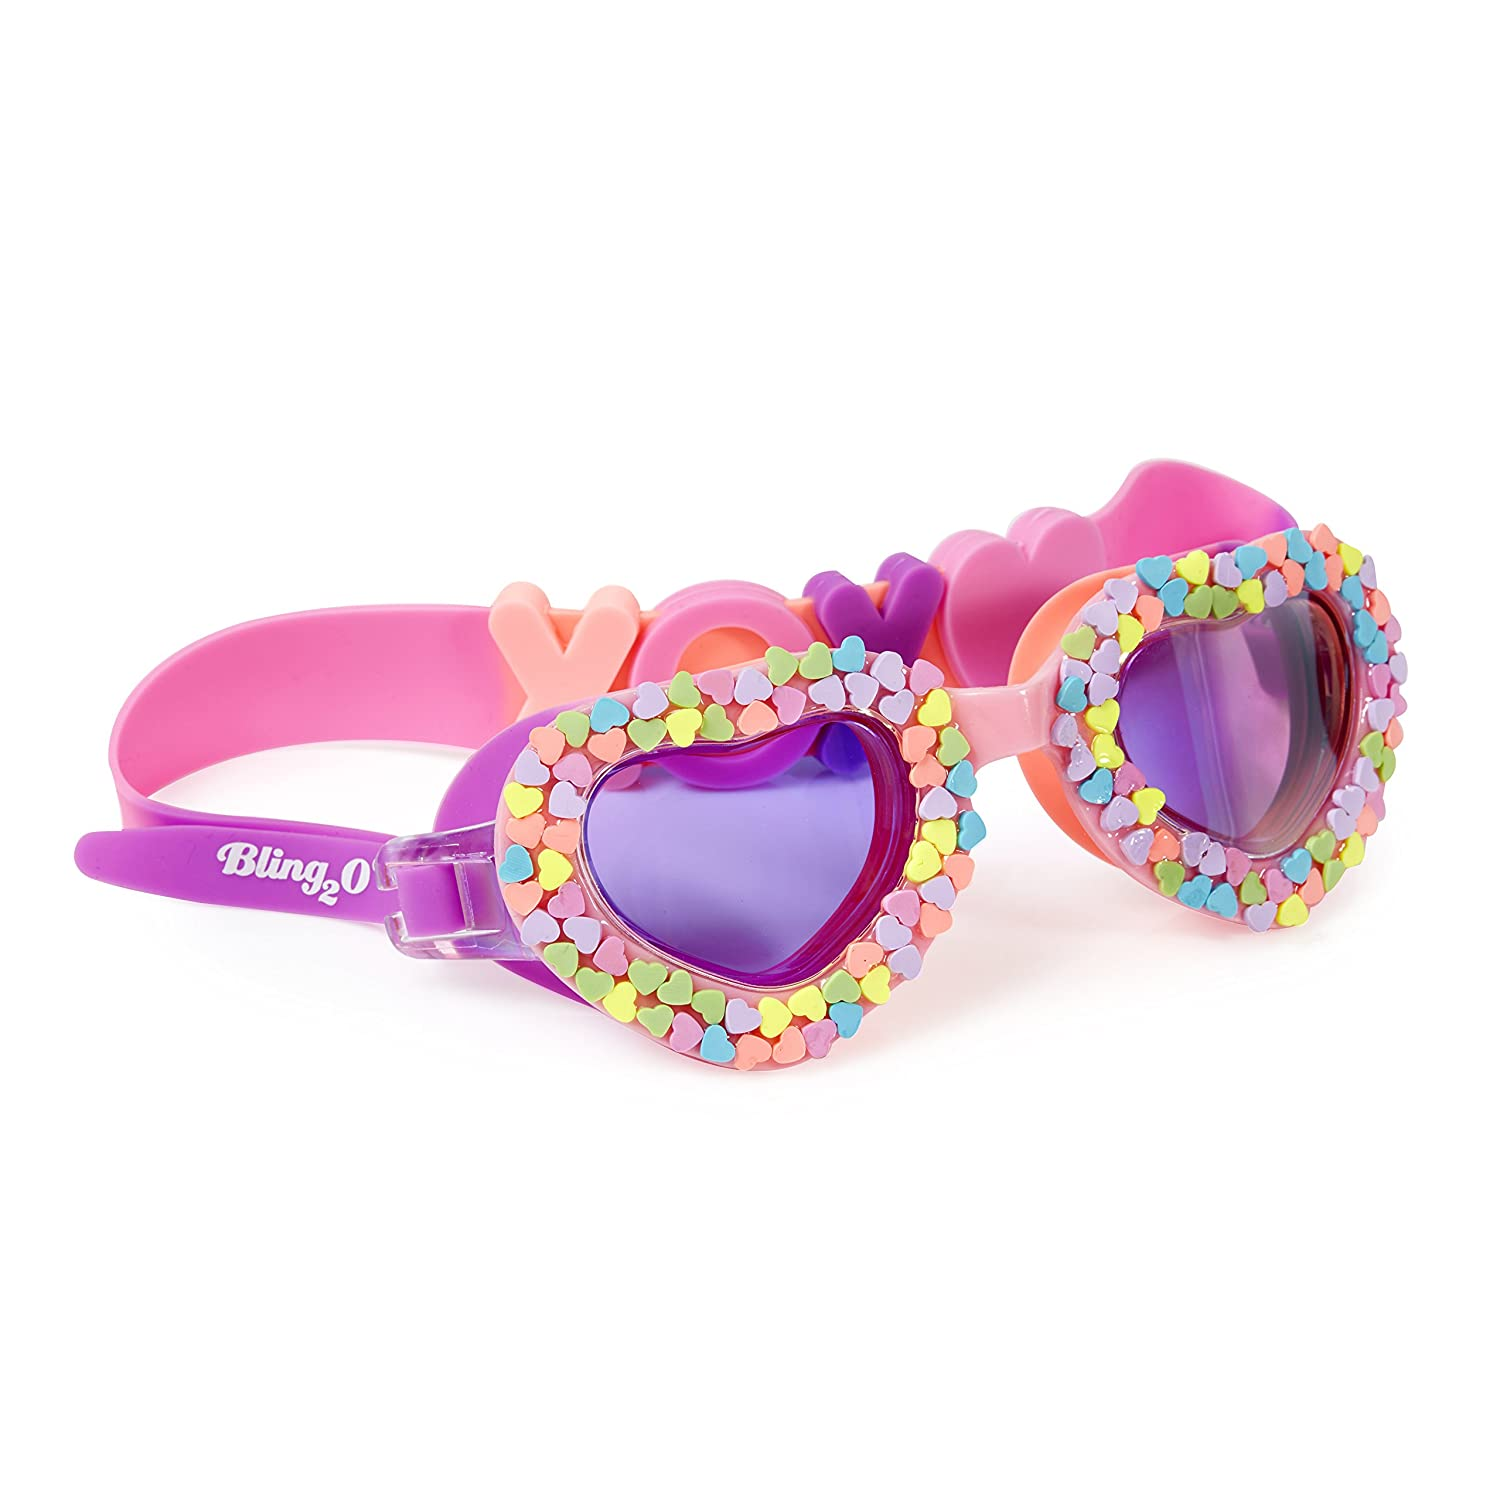 914585b96969 Amazon.com   Swimming Goggles For Girls - Candy Hearts Kids Swim Goggles By  Bling2o (Be Mine Pastel)   Sports   Outdoors